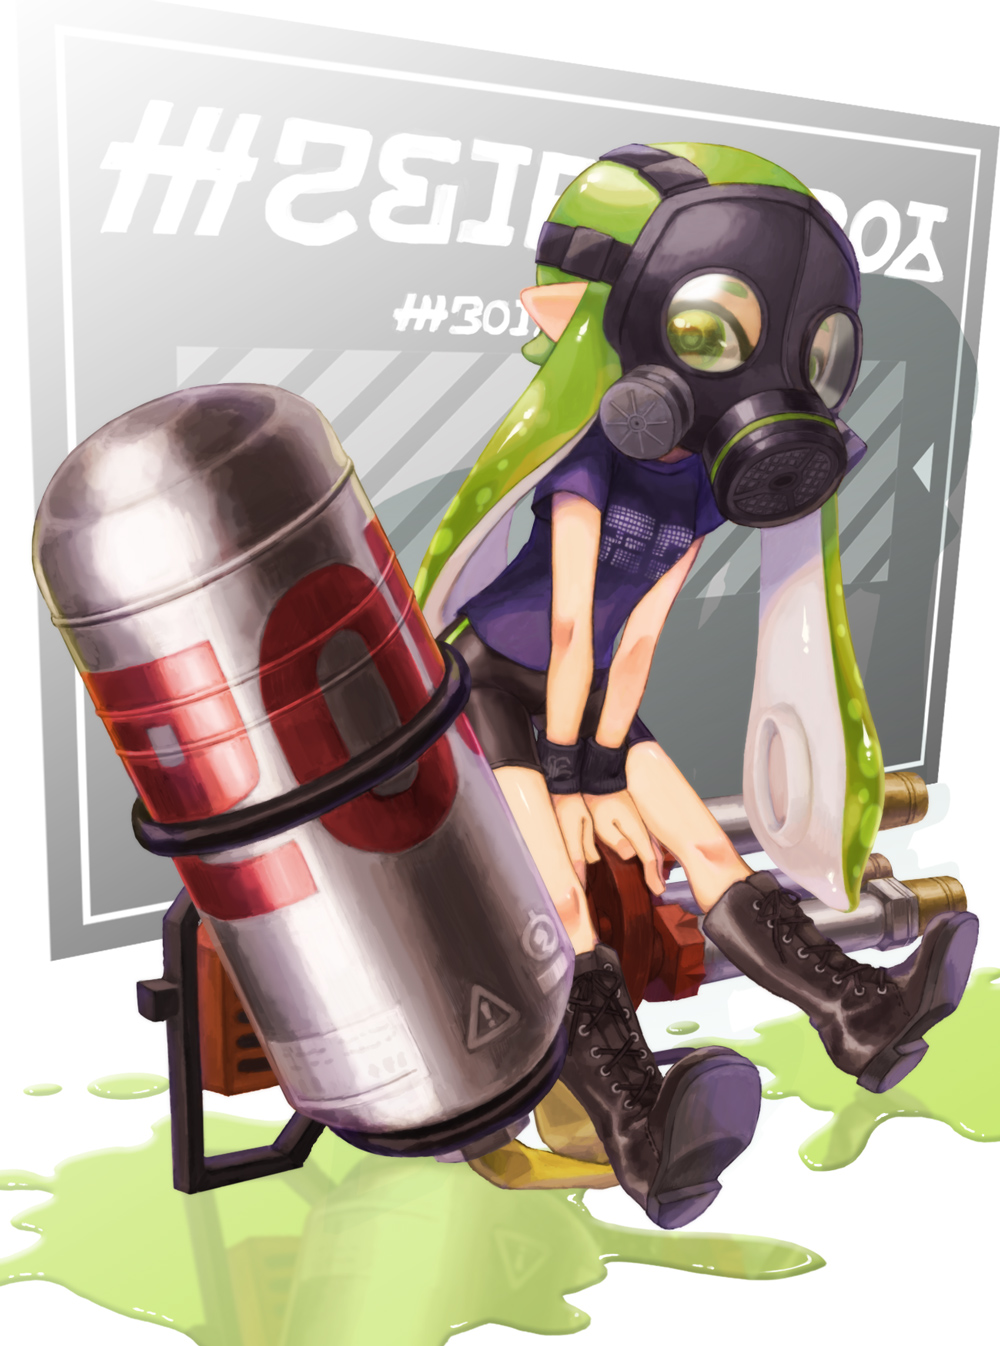 1girl bike_shorts black_footwear boots cross-laced_footwear domino_mask full_body gas_mask green_eyes green_hair highres hydra_splatling_(splatoon) inkling lace-up_boots long_hair mask paint paint_splatter pointy_ears purple_shirt reflection shirt short_sleeves single_vertical_stripe solo splatoon splatoon_(series) splatoon_2 suction_cups suzuhiro t-shirt tentacle_hair v_arms wristband